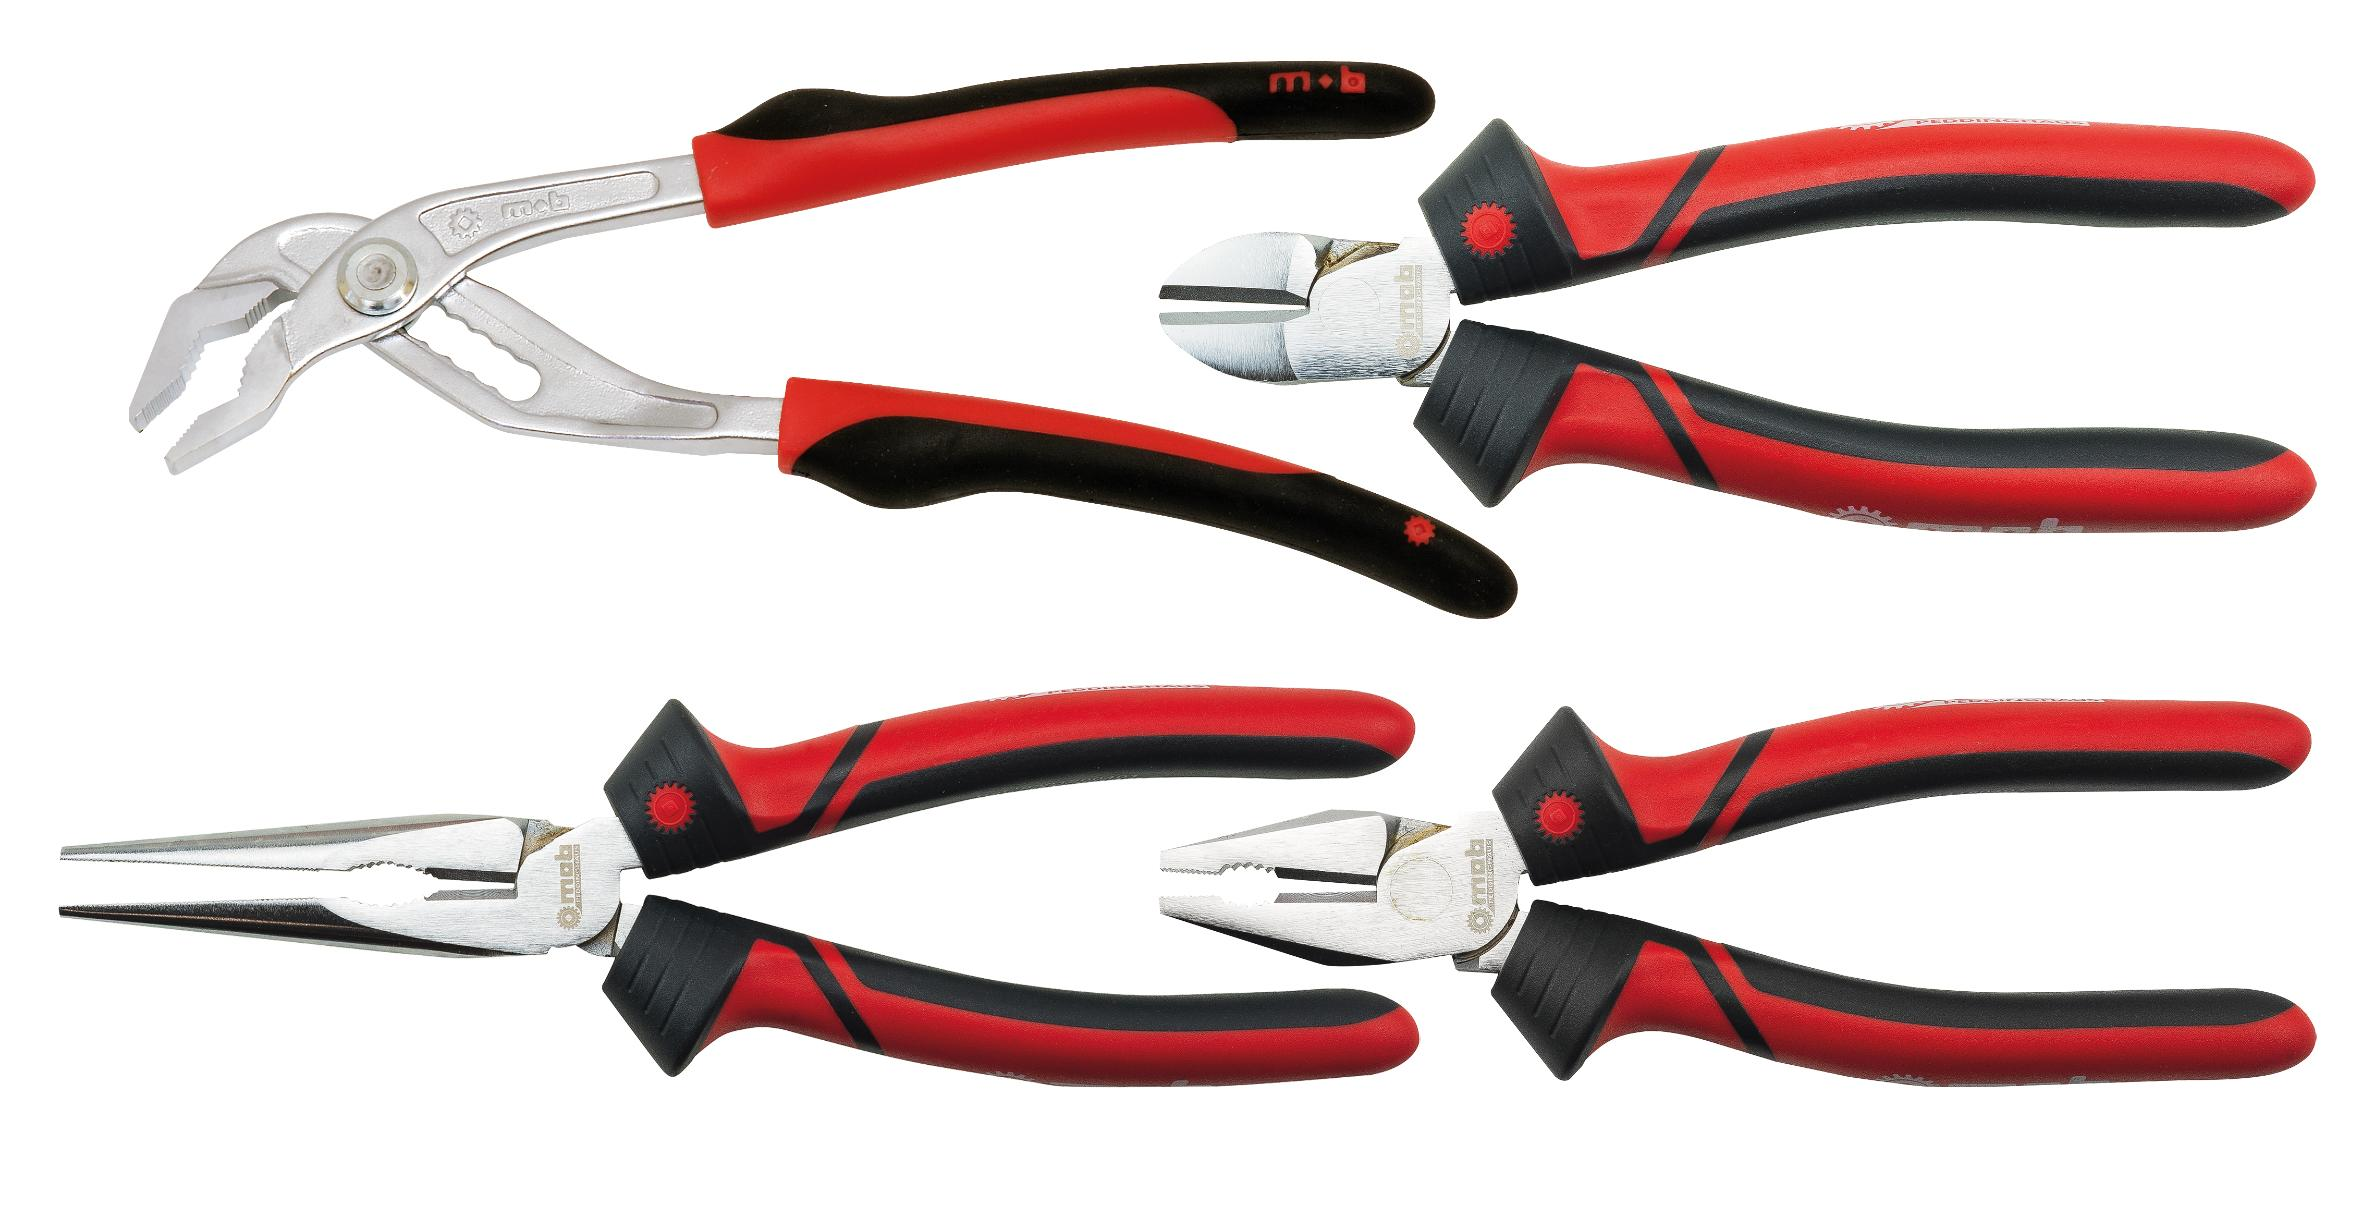 SET OF 4 BI-MATERIAL PLIERS | e-catalog MOB-Peddinghaus